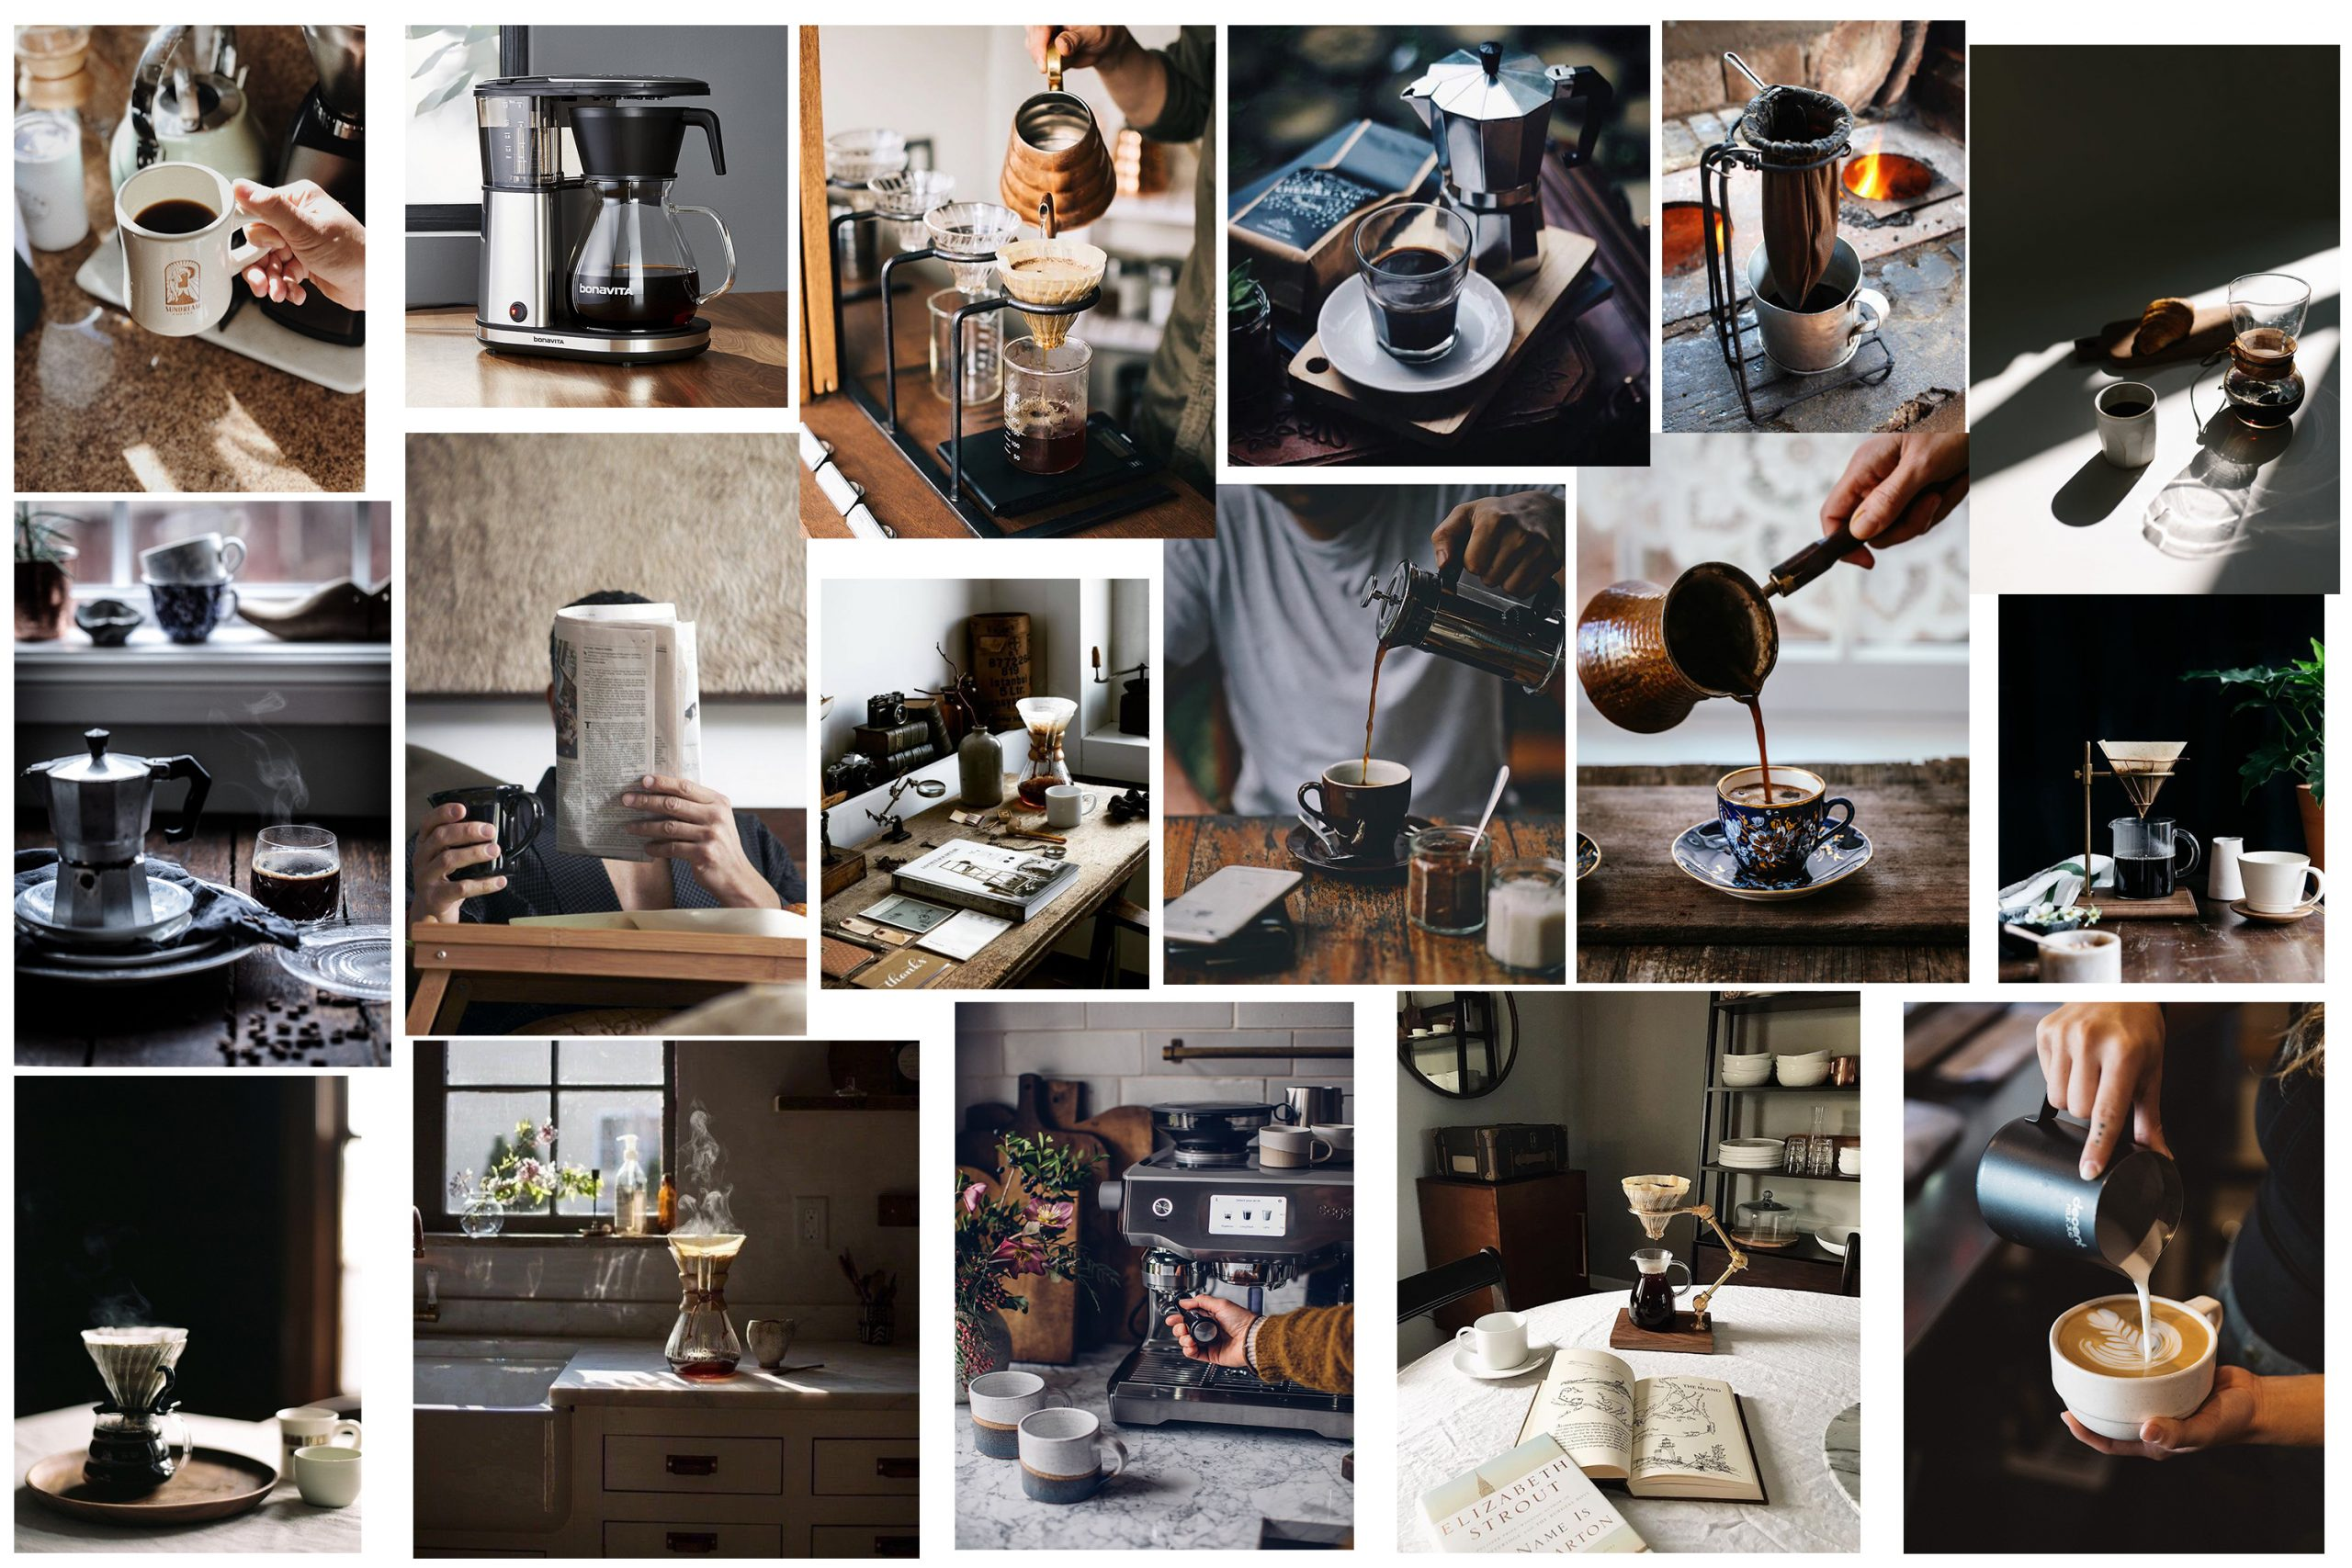 Cafea - How it's made / By Silviu Tolu / Monday's Moodboard